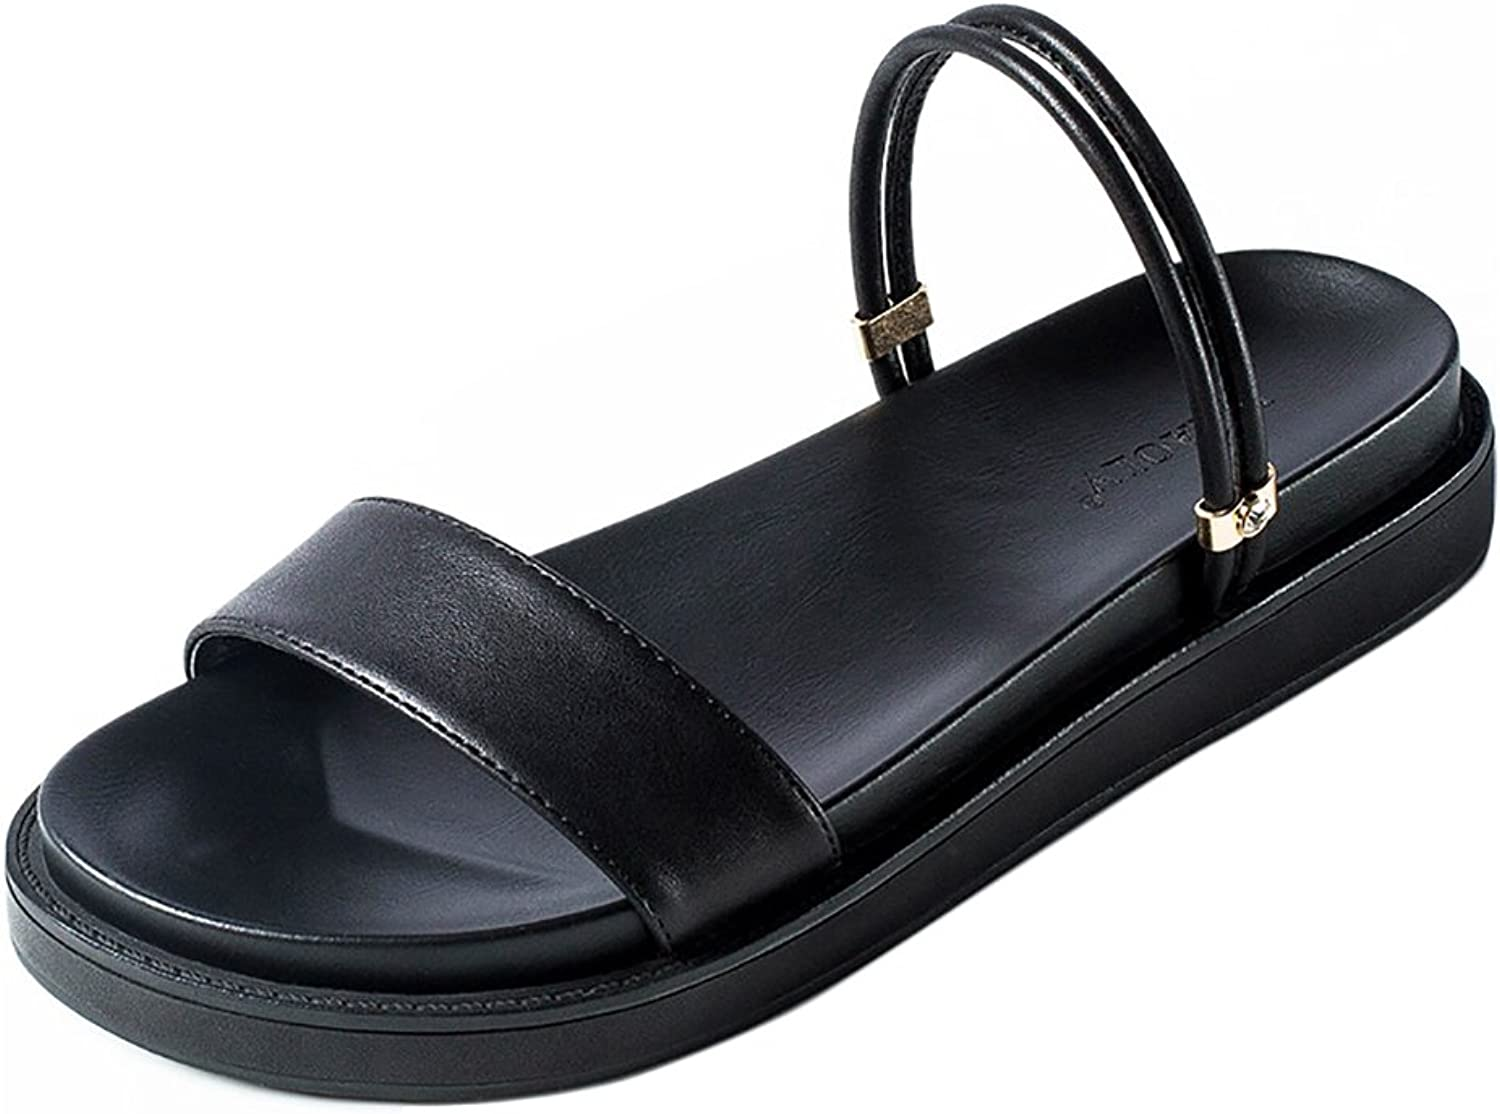 Simple Summer Low Heeled Sandals Ladies Fashion Slippers ( color   Black , Size   35 )